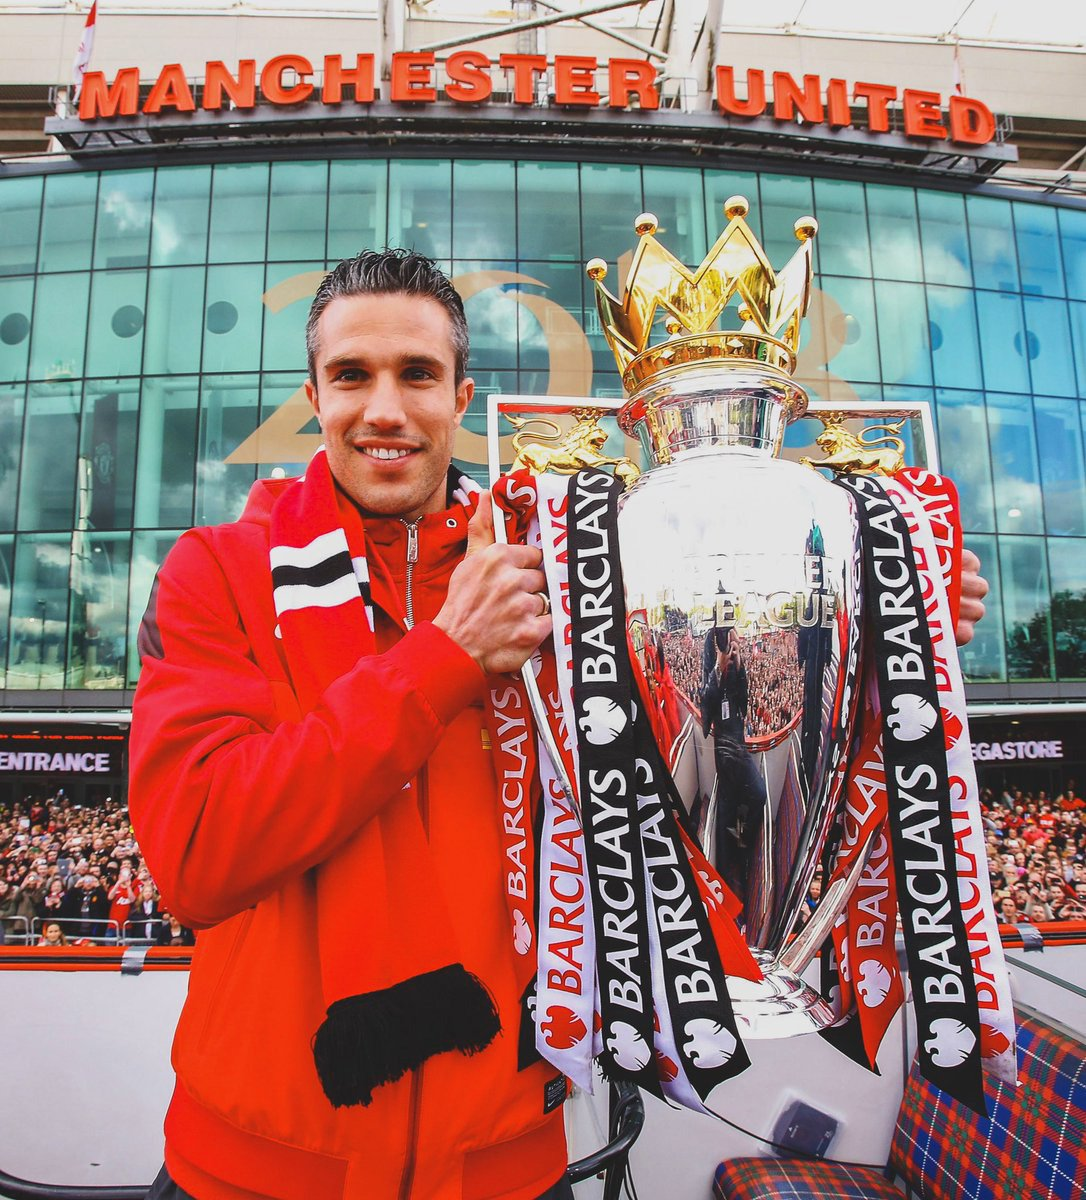 RESMI! Robin Van Persie gantung sepatu. Mantan pemain Setan Merah itu menyampaikan pengumuman setelah memainkan laga terakhirnya bersama Feyenoord.  👤105 Games ⚽️ 58 Goal 🏆 Premier League 🏆 Community Shield  Thank you @Persie_Official ❤️👏⚽️ #UtdIndonesia #UnitedTogether